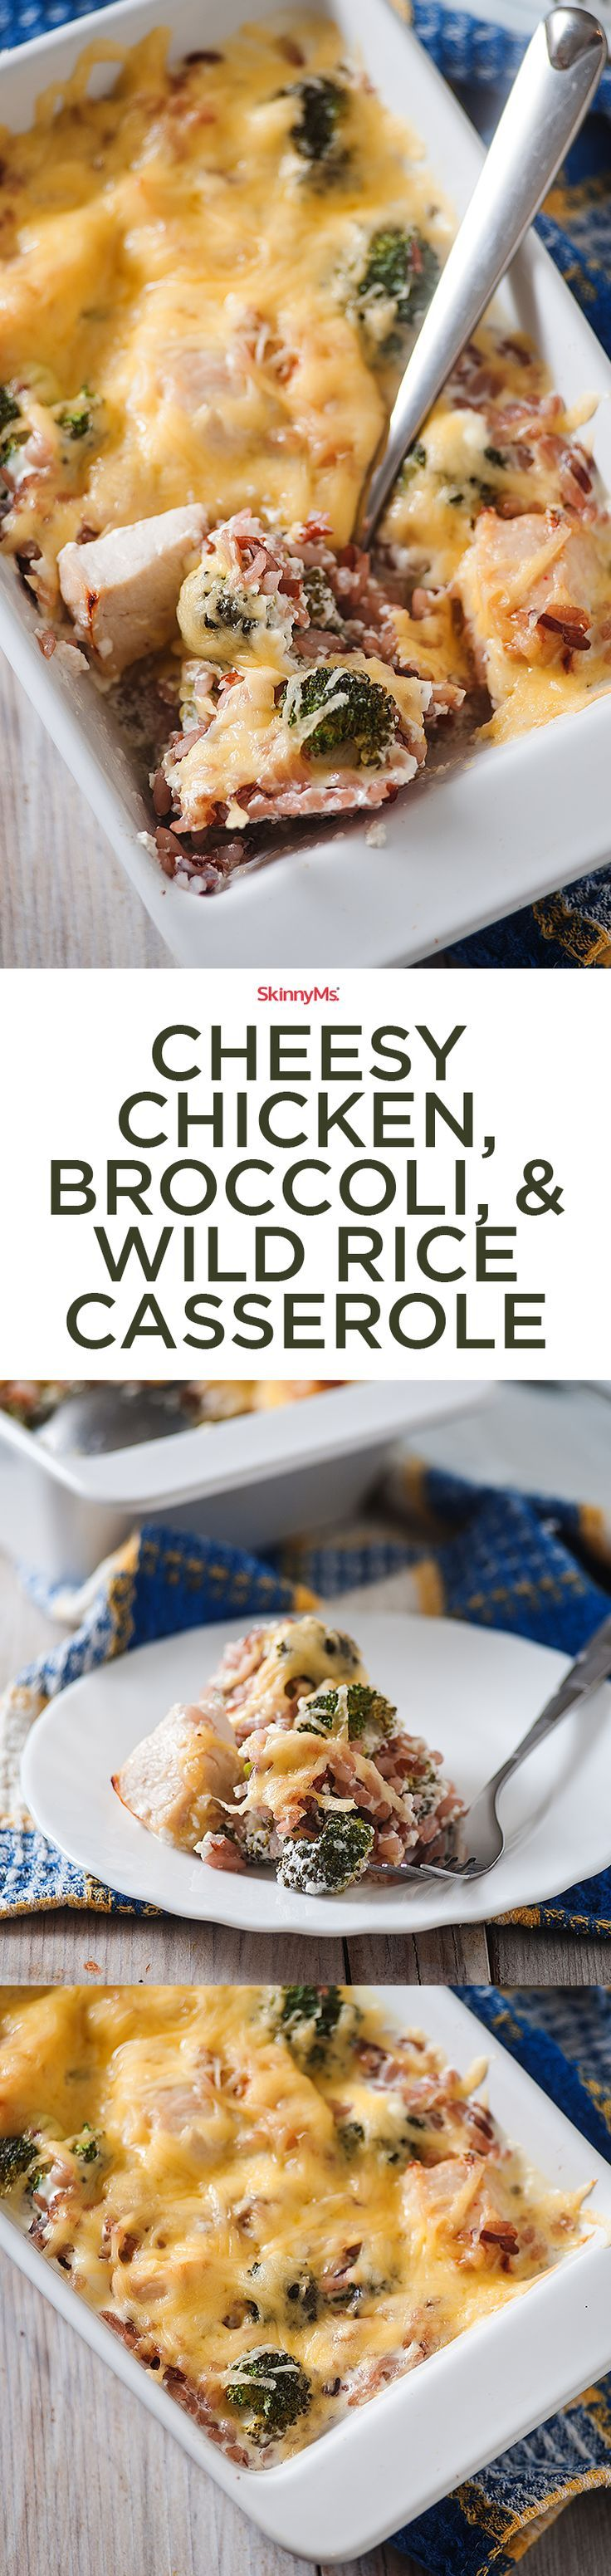 Add this scrumptious Cheesy Chicken, Broccoli, and Wild Rice Casserole to your weekly meal plan!